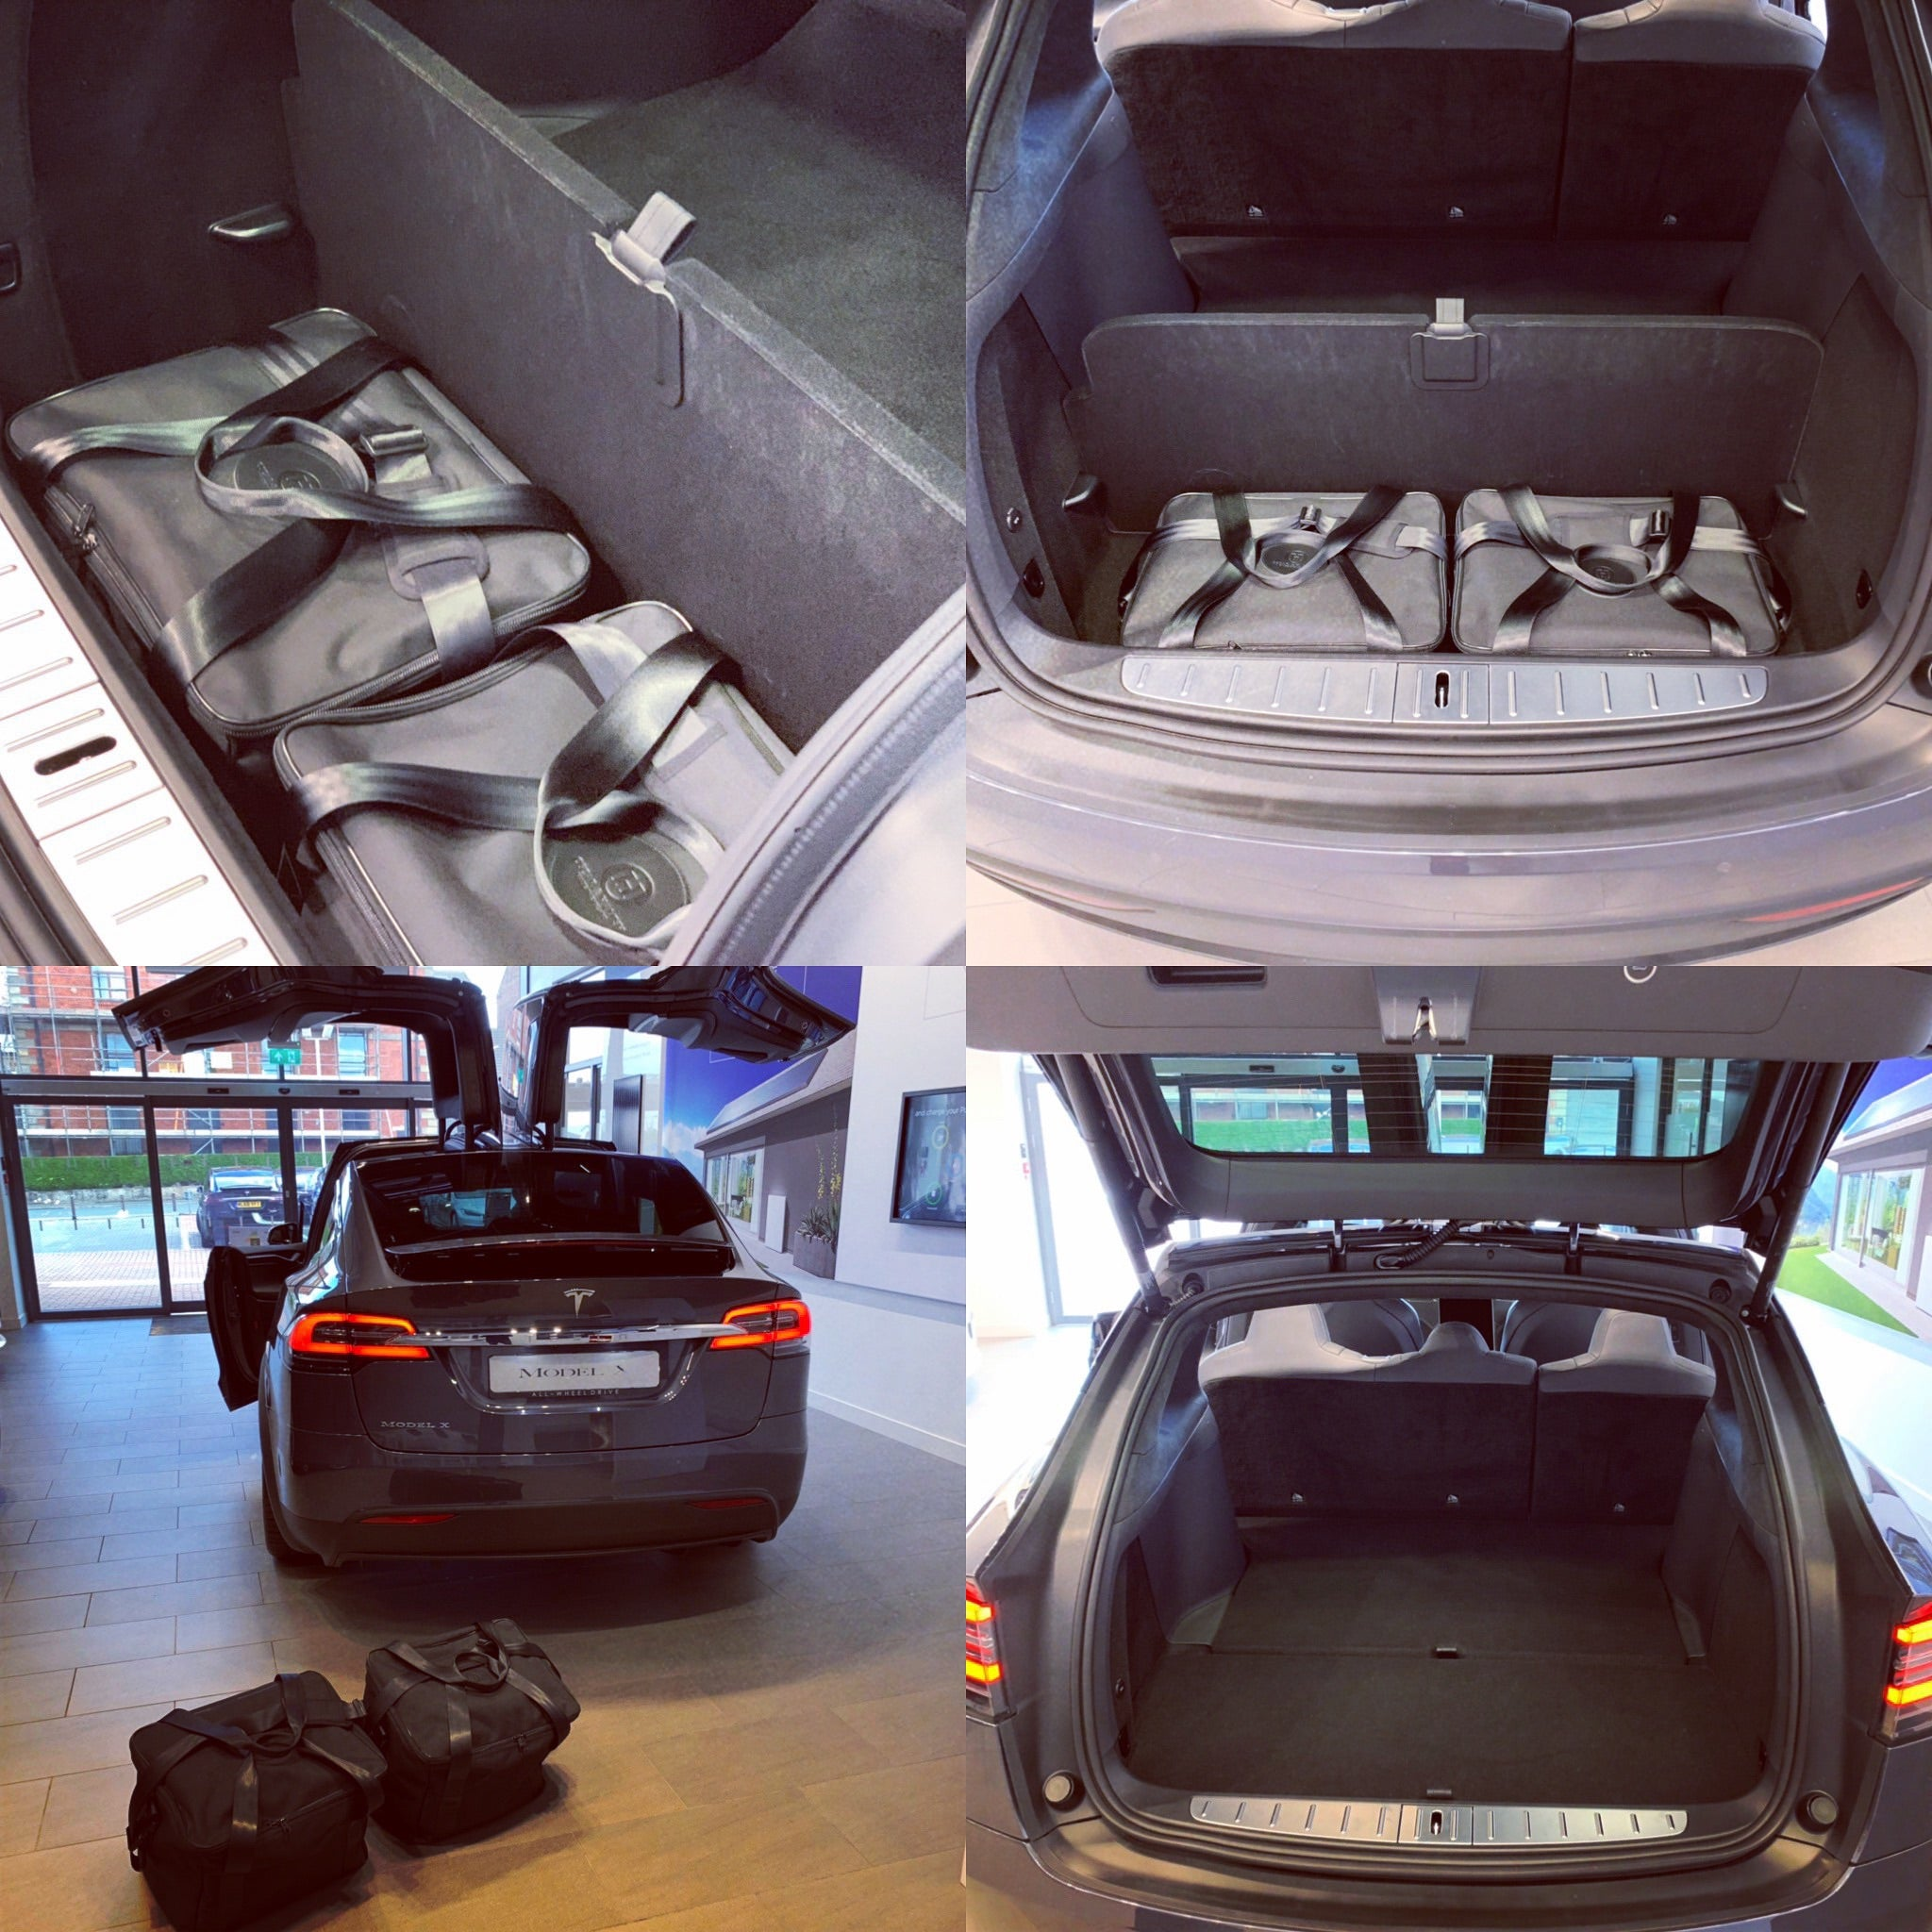 Tesla Model X - TRUNK 2 bag set - NEW v 2.0  'lower storage' bag set